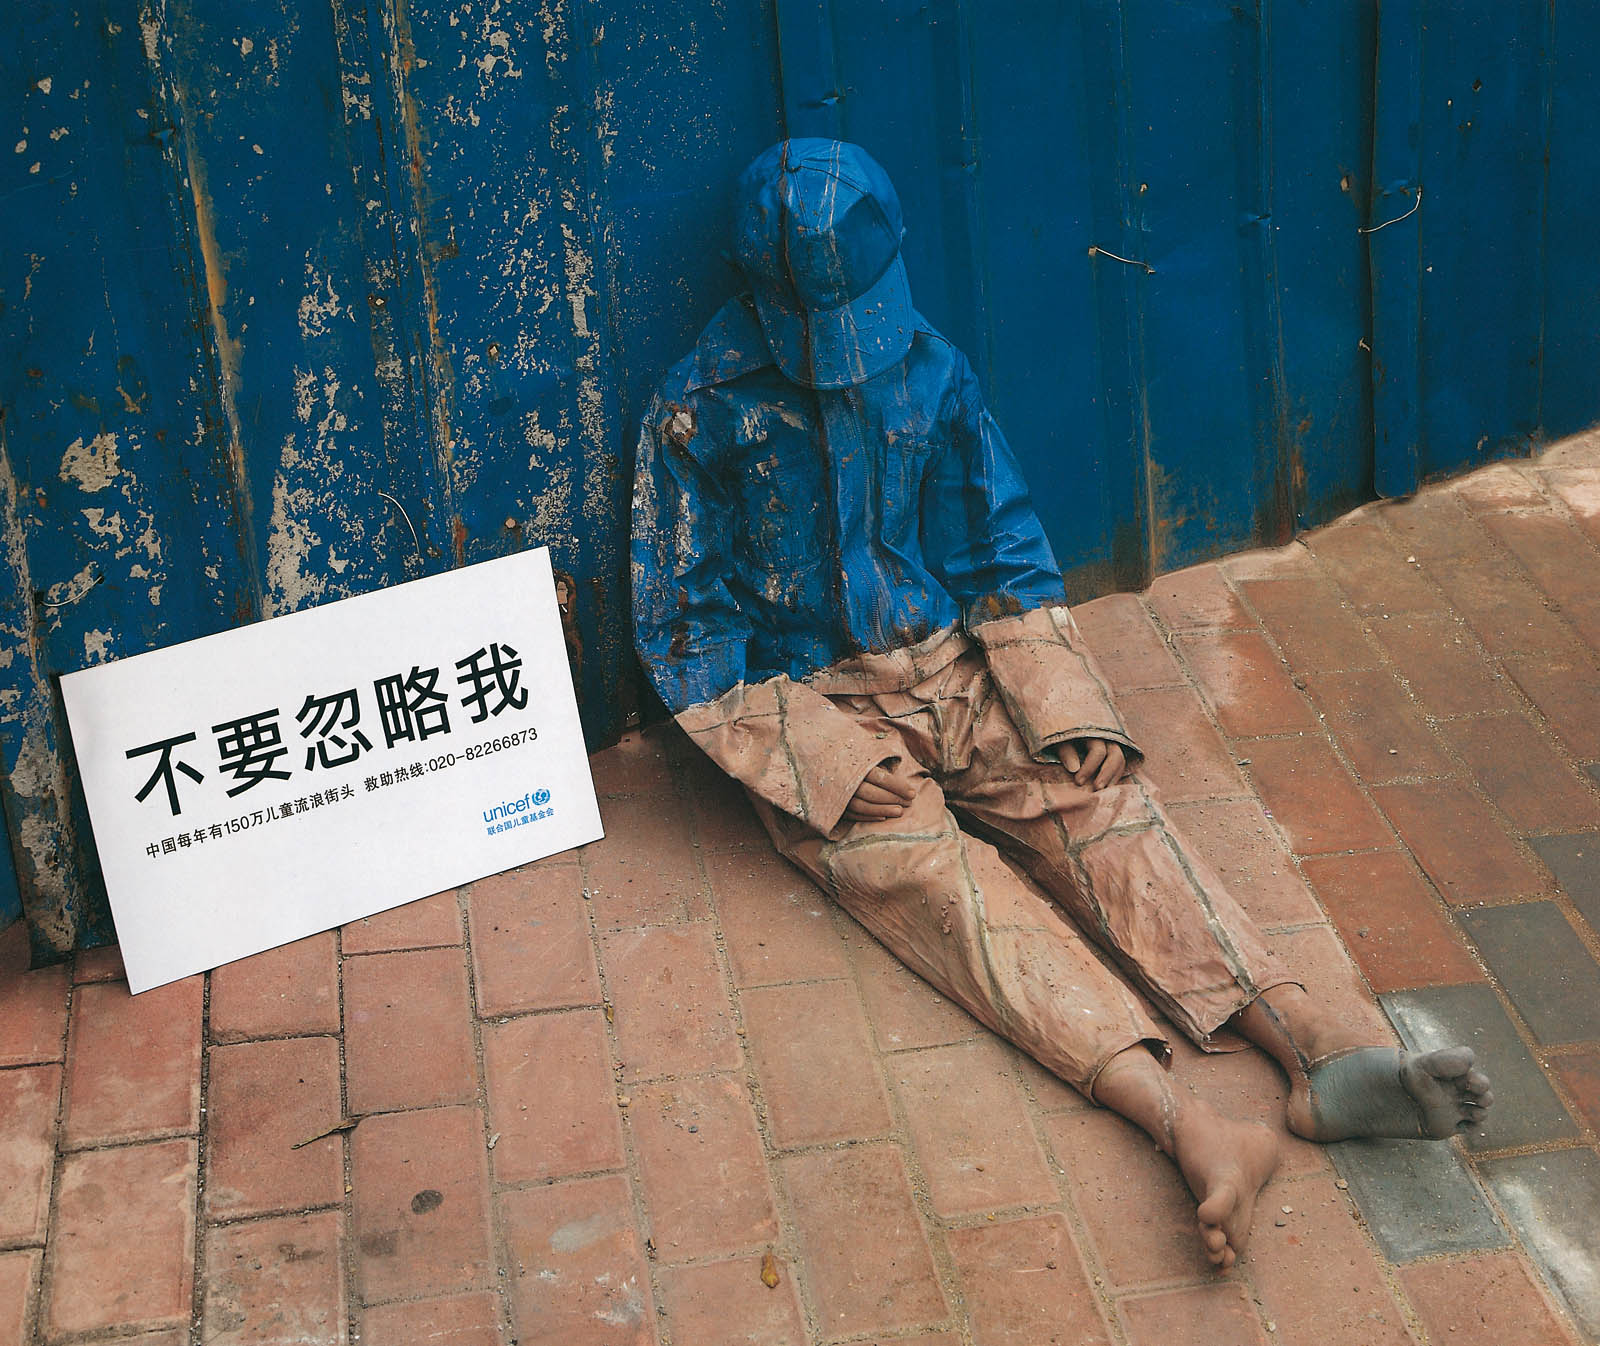 Unicef Wall in UNICEF Outdoor-Kampagne in China